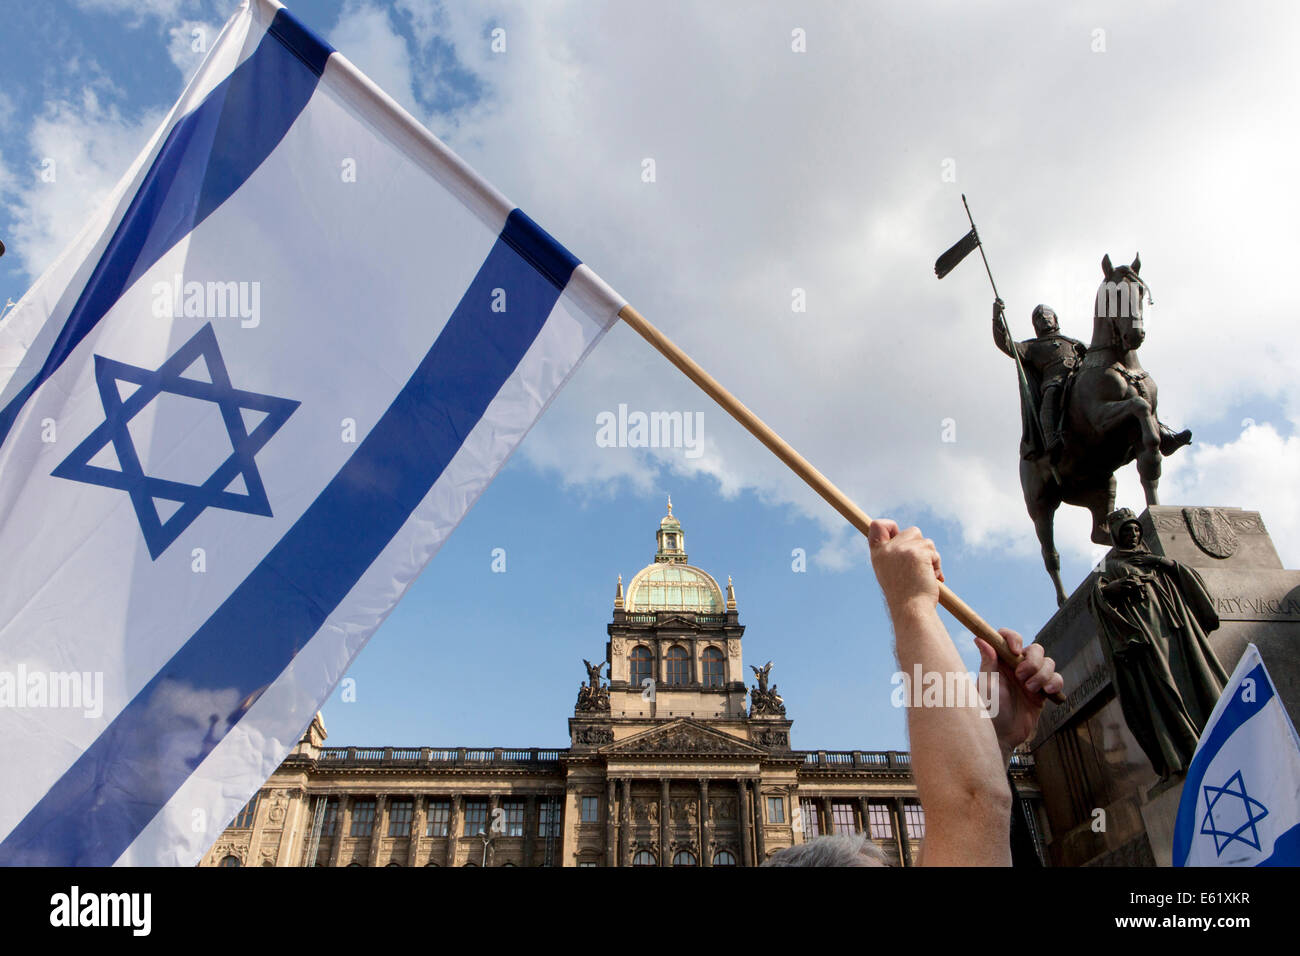 Demonstration in support of Israel, Prague Czech Republic - Stock Image